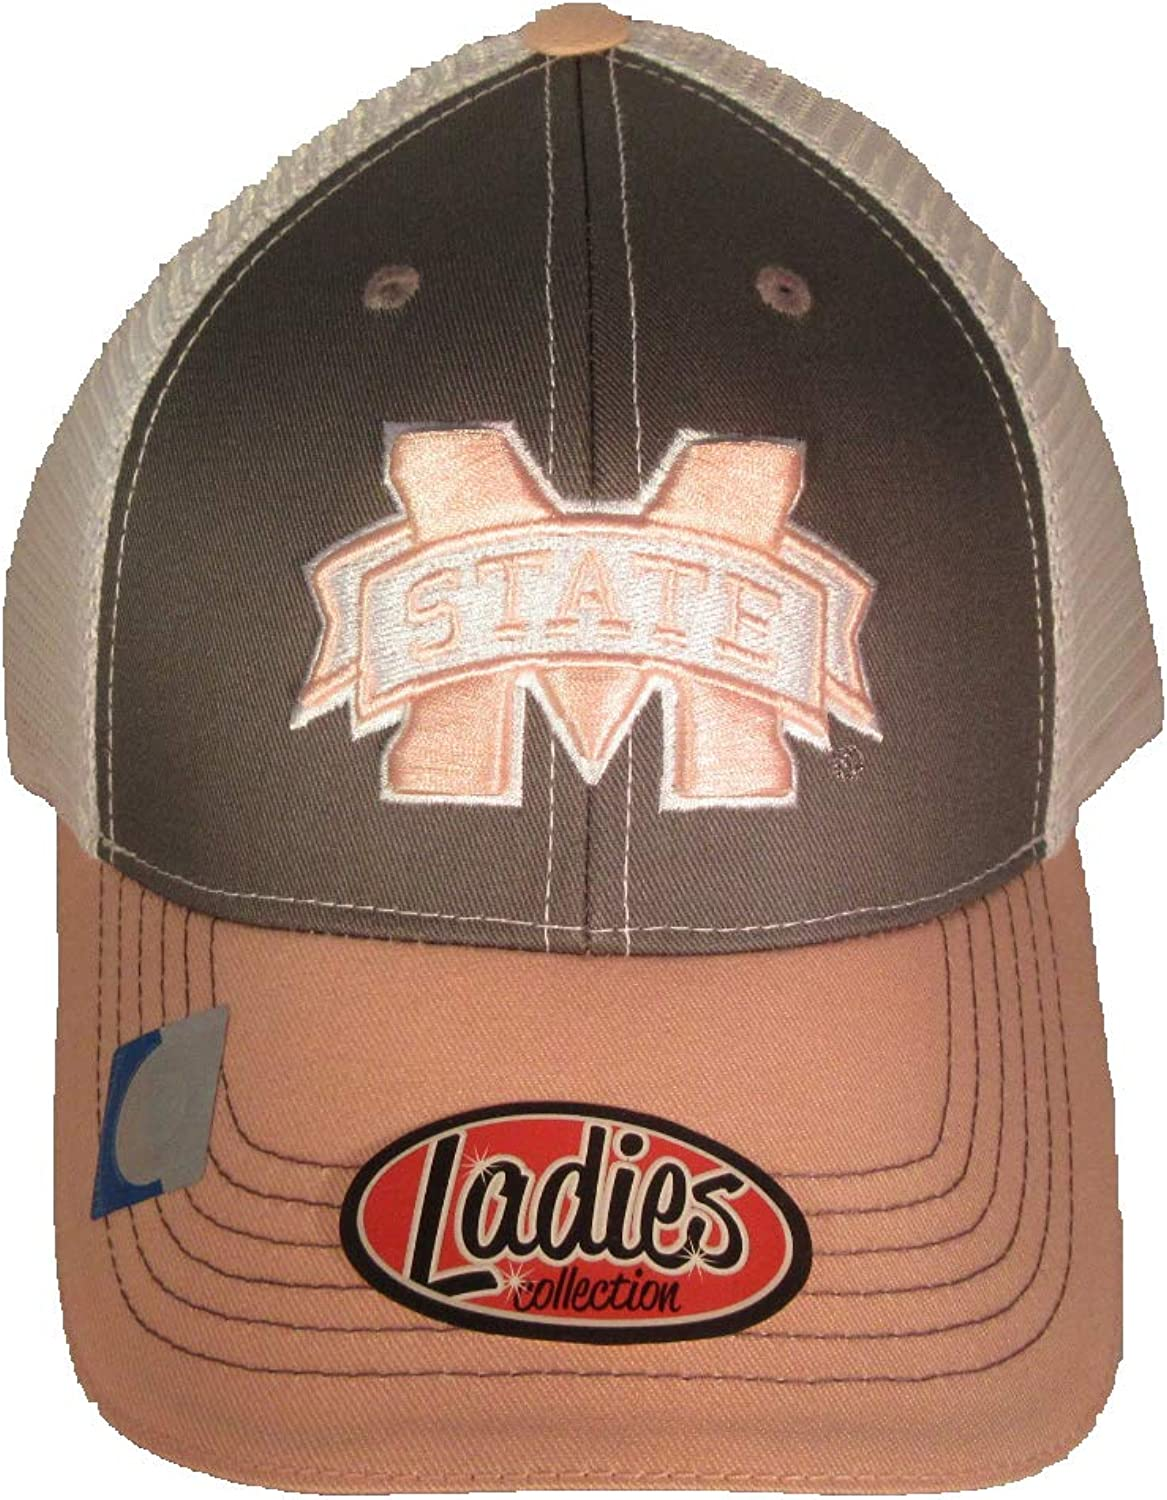 Collegiate Headwear Mississippi State Bulldogs with Mesh Back Ladies Baseball Cap. Pink